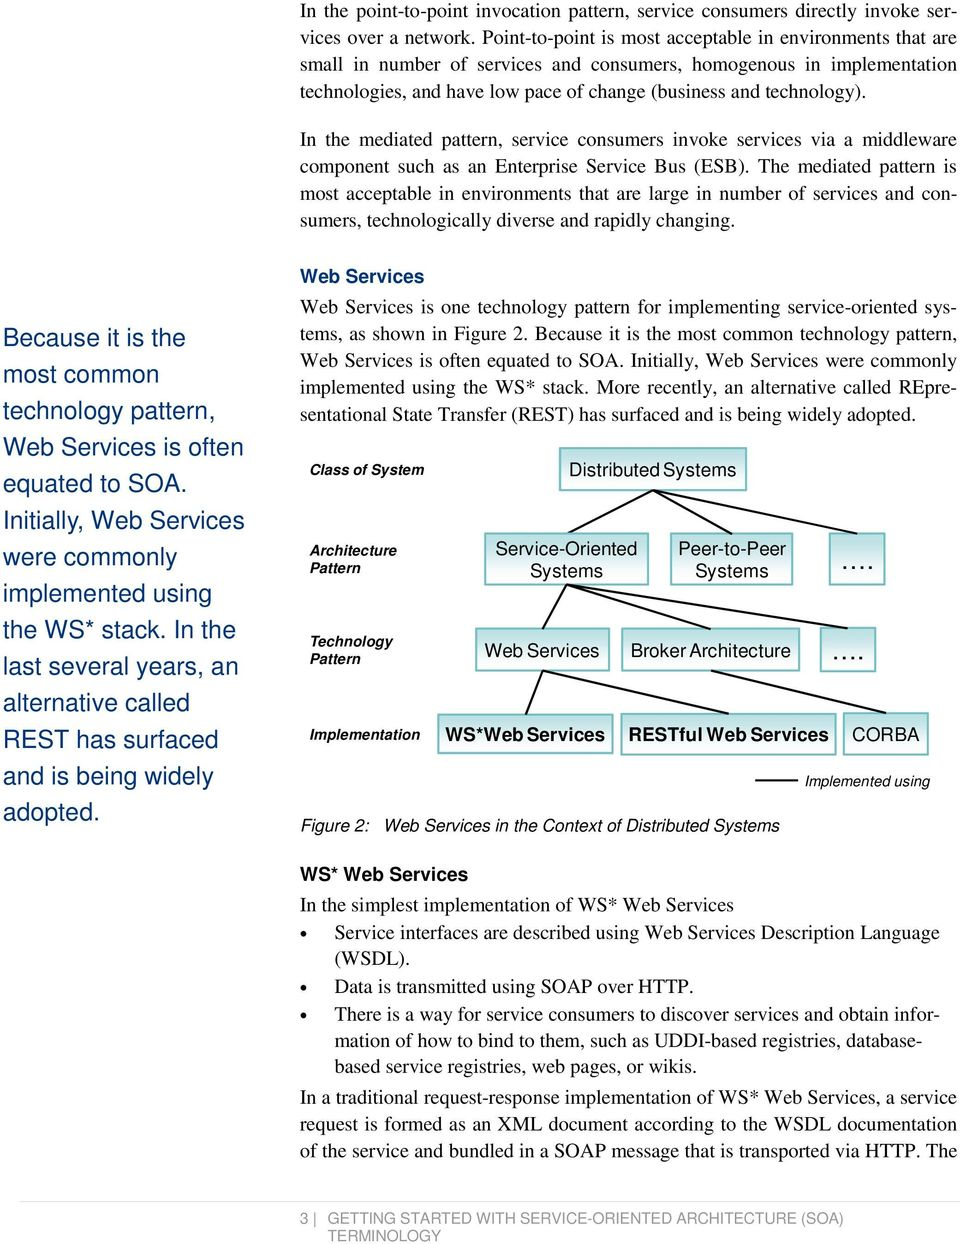 In the mediated pattern, service consumers invoke services via a middleware component such as an Enterprise Bus (ESB).